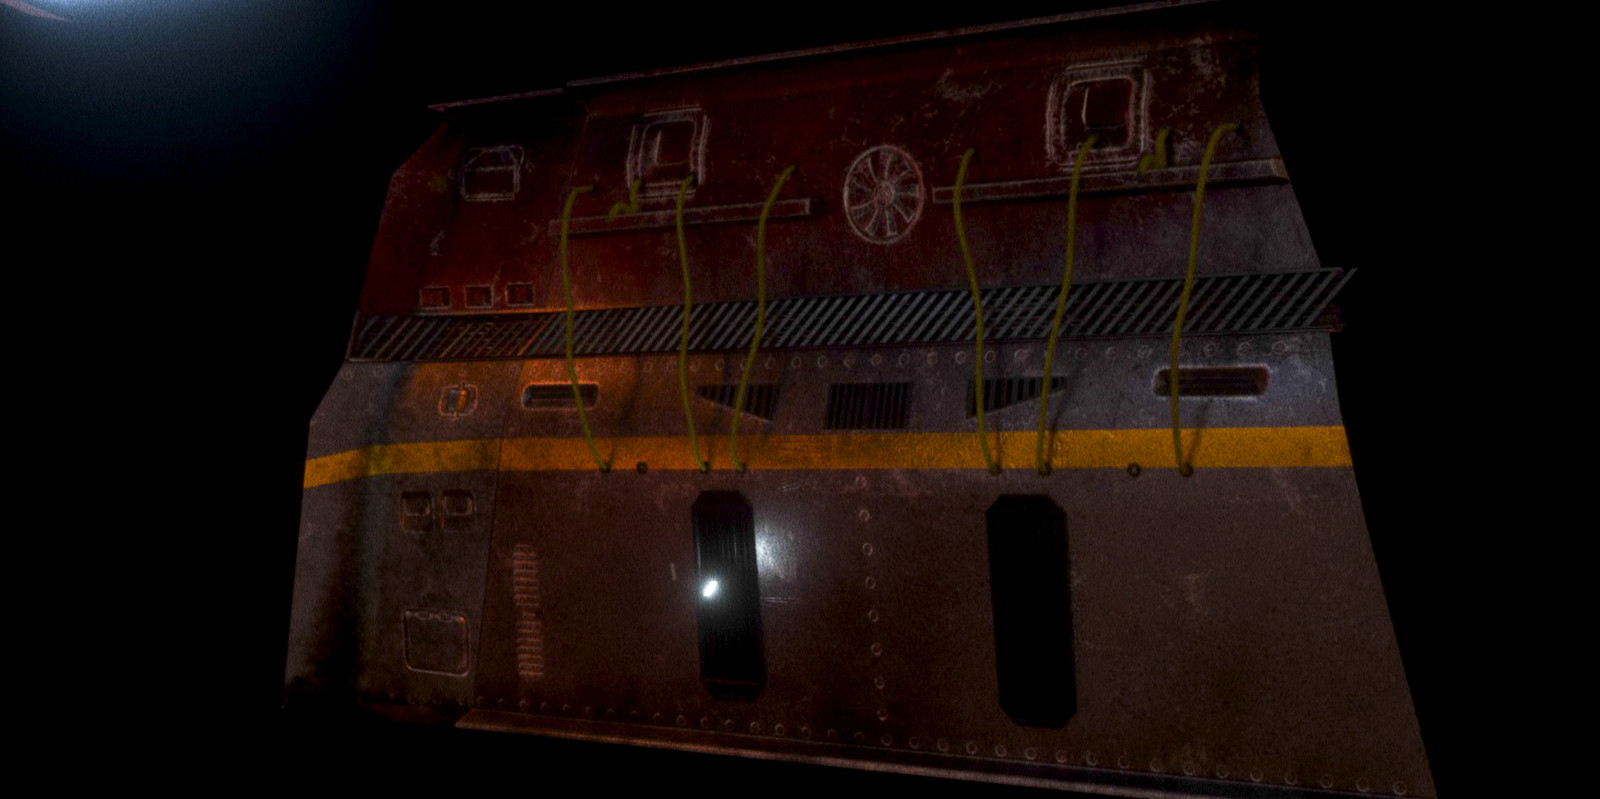 Asset of the project: Wall (Modeled: Cinema4D, textured: Substance Painter, rendered: Octane Render)